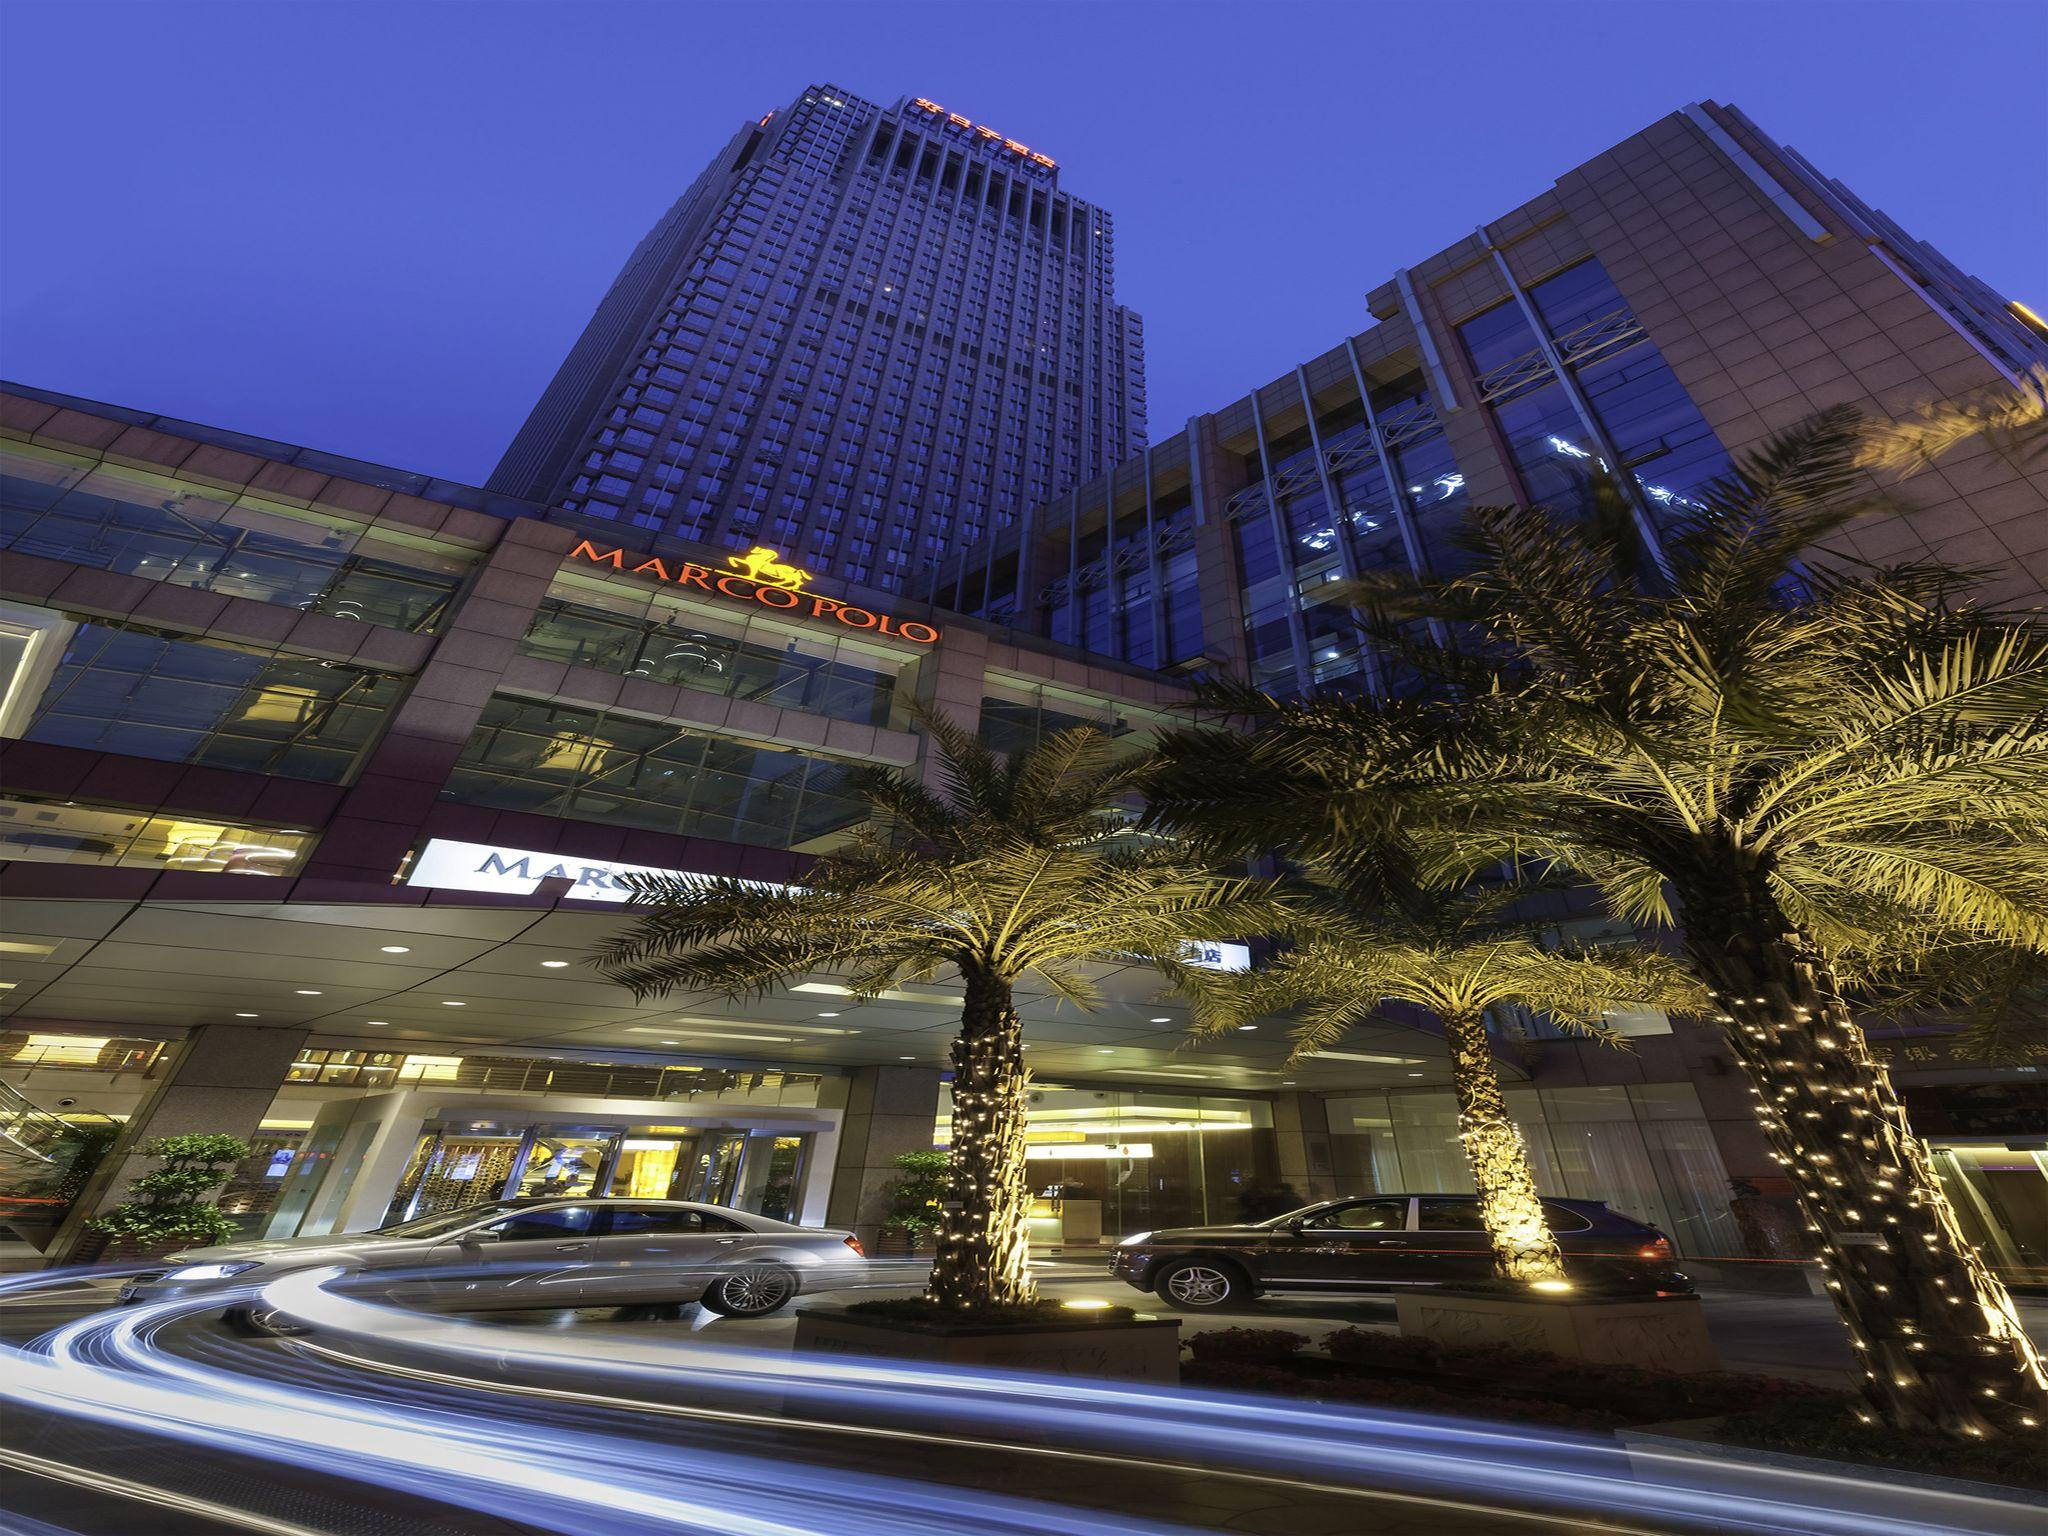 Shenzhen Marco Polo Good Day Hotel booking.com image search results